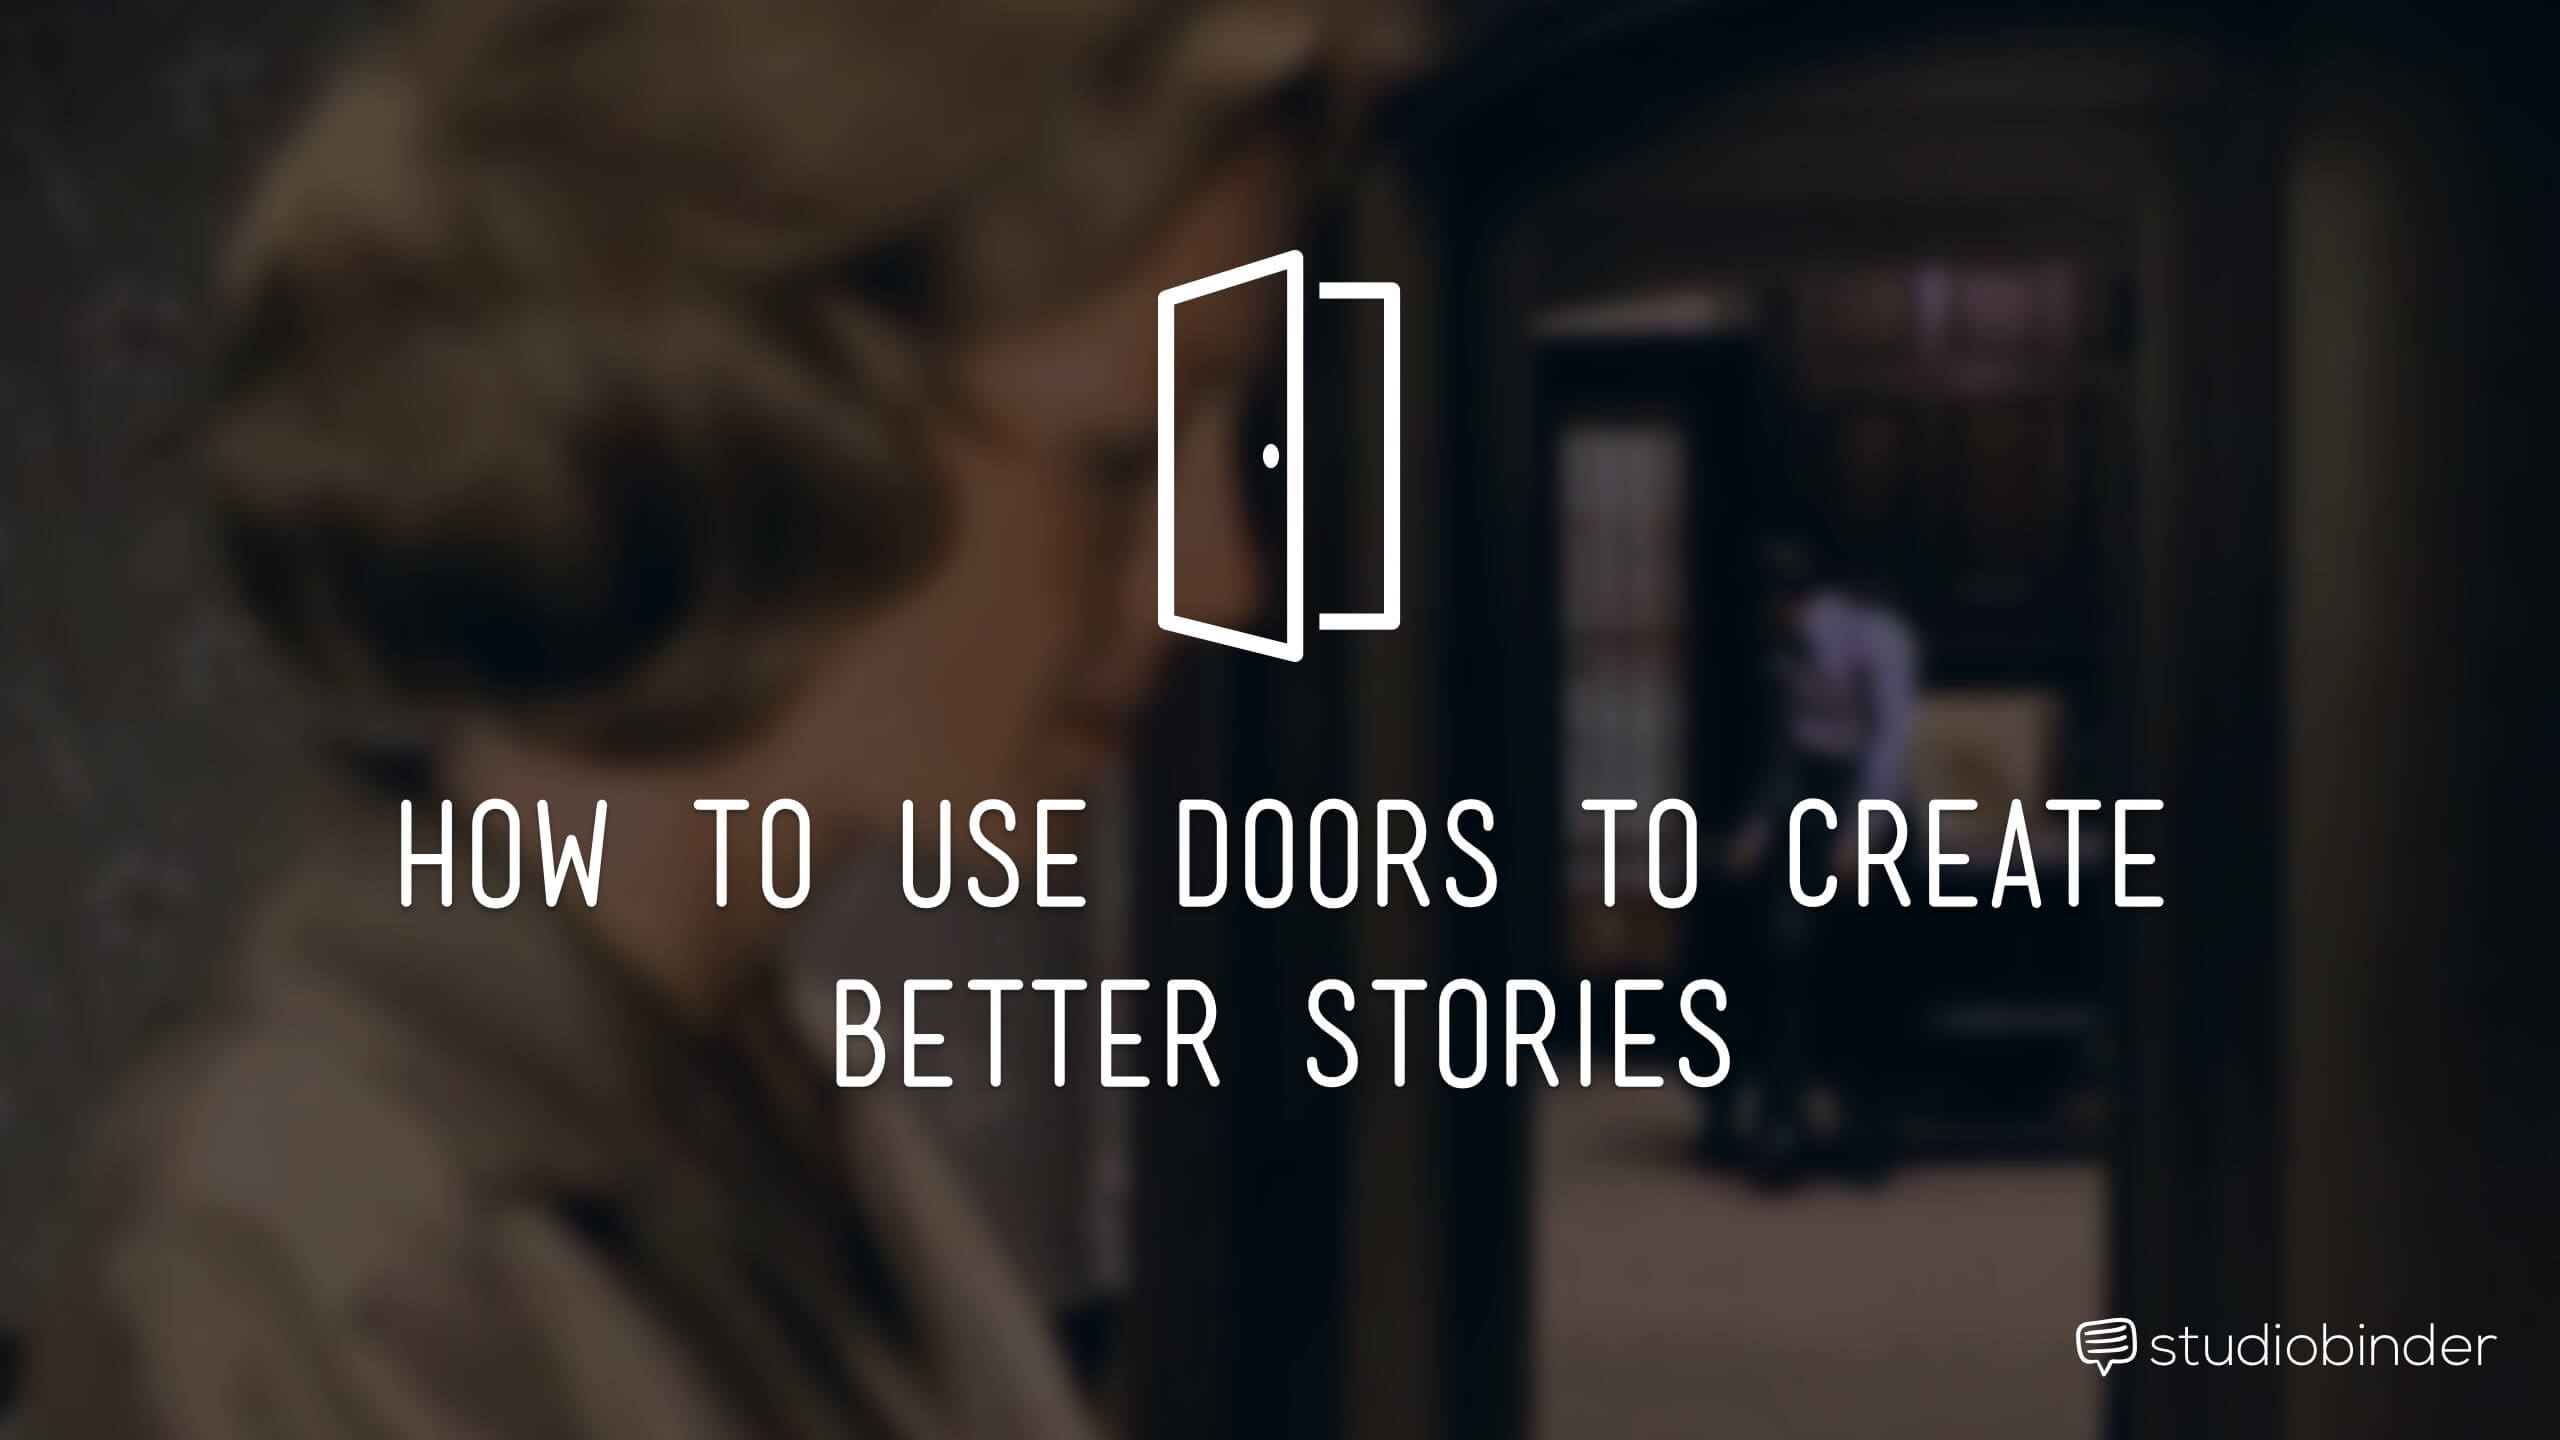 & How These Oscar Winning Films Use Doors To Tell Better Stories